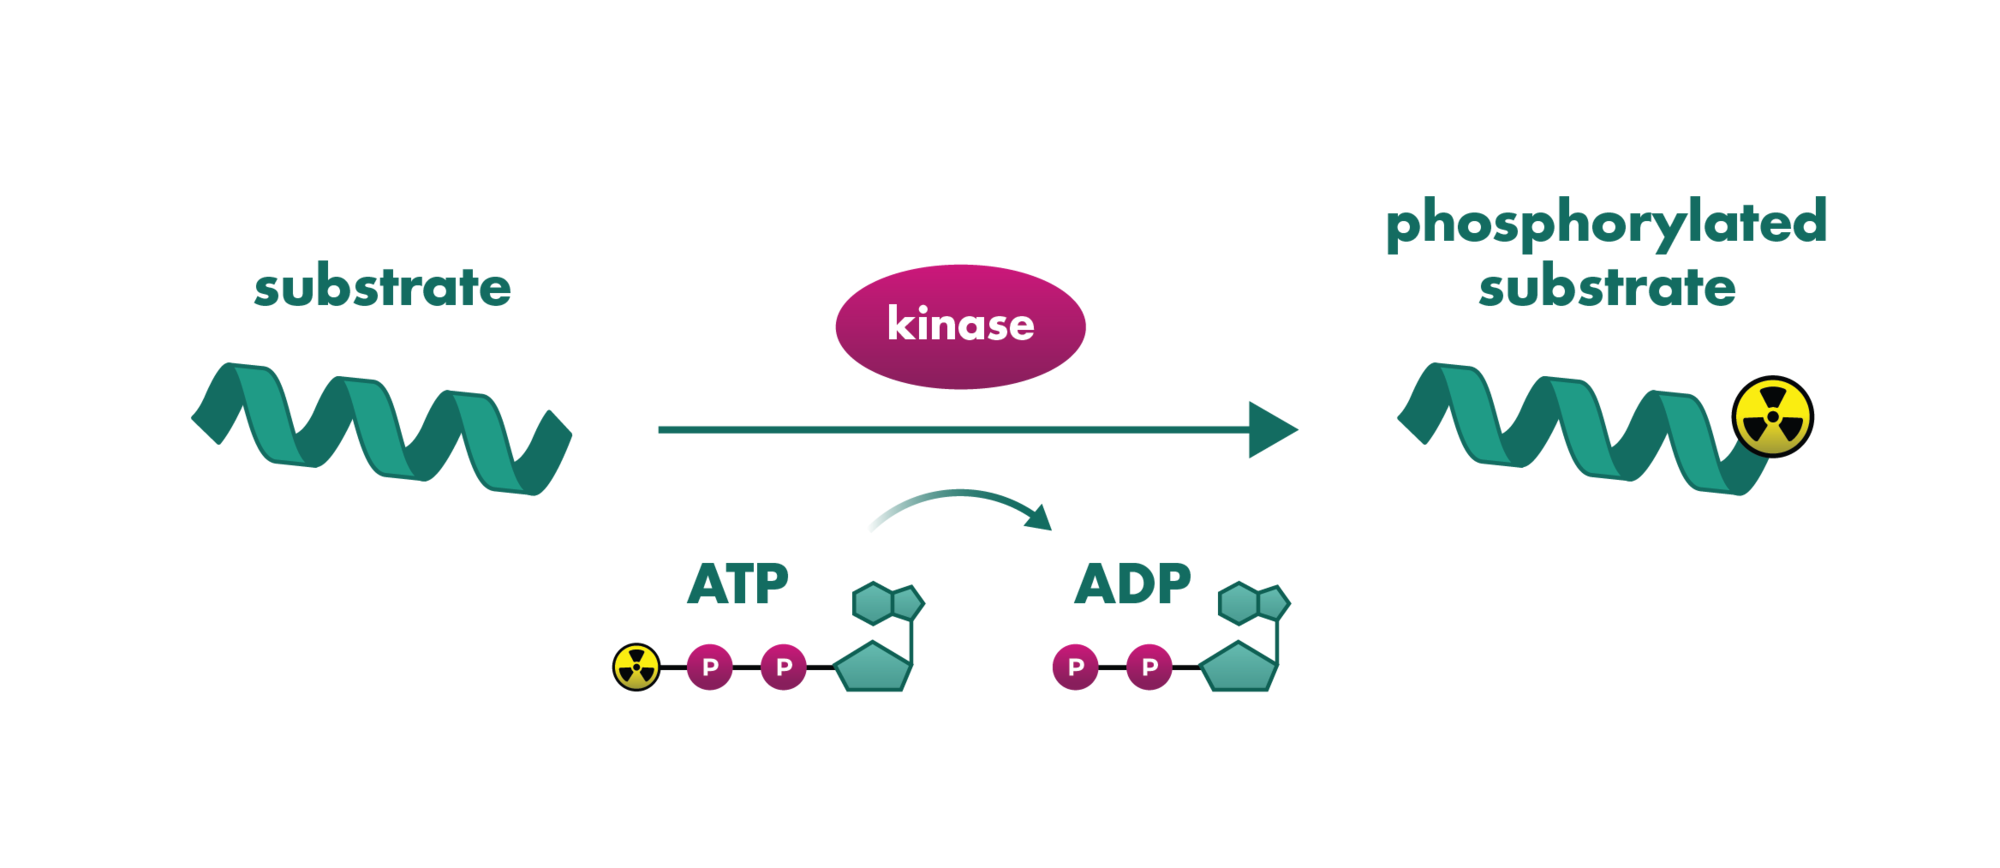 Principle of radiometric kinase activity assay for kinase inhibitor screening.. Radioactive phosphate get's transferred to the kinase substrate. the now radioactive substrate get's quantified.